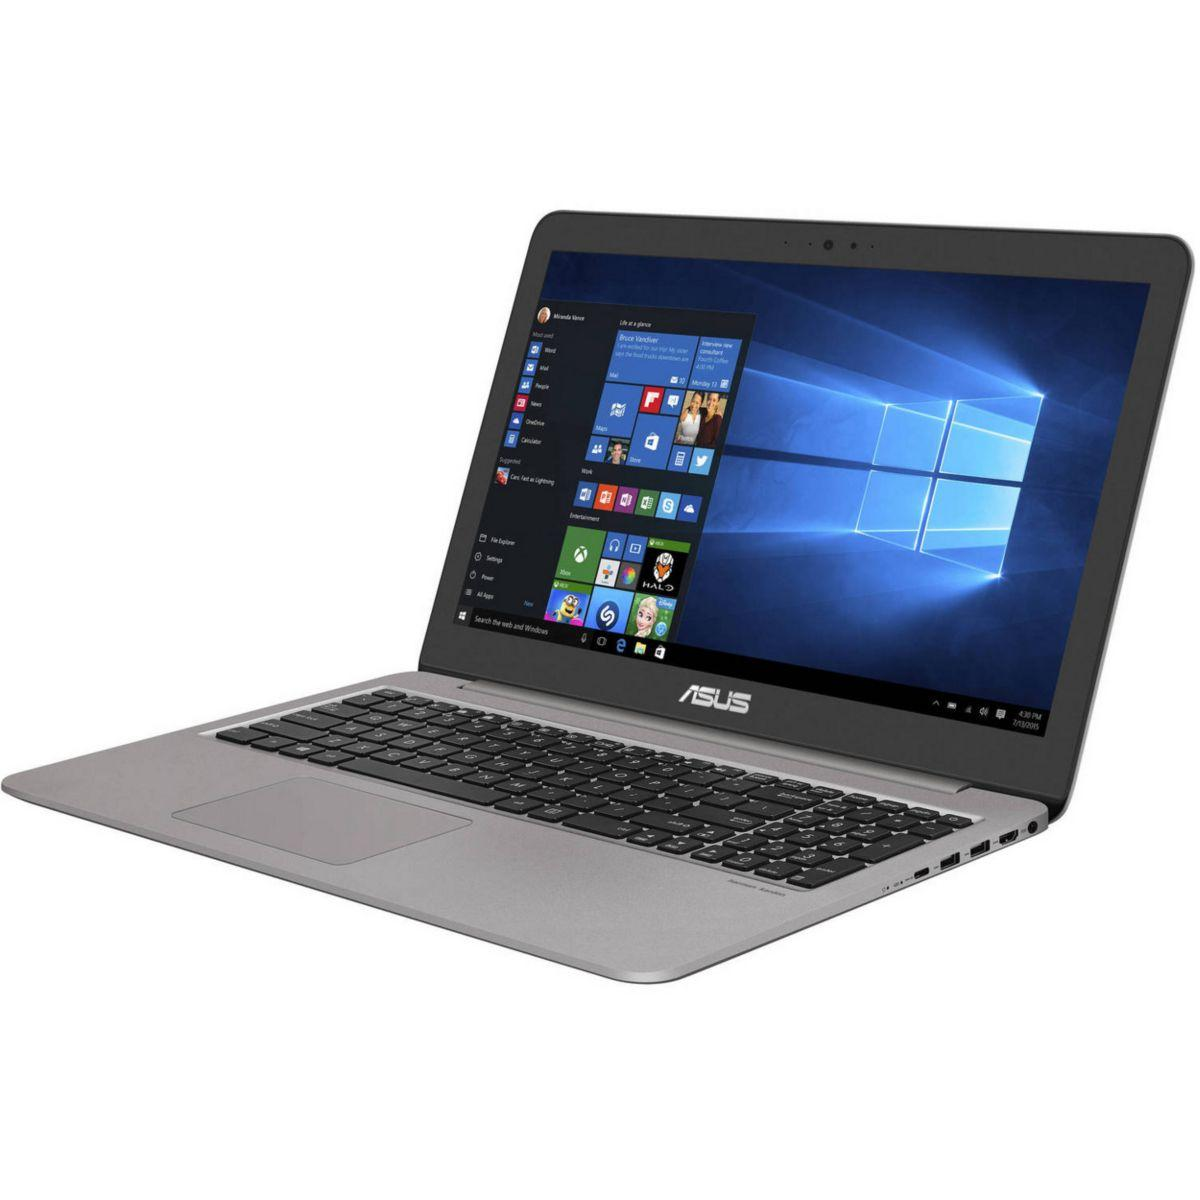 Portable asus ux510uw-dm088t - 5% de remise : code multi5 (photo)